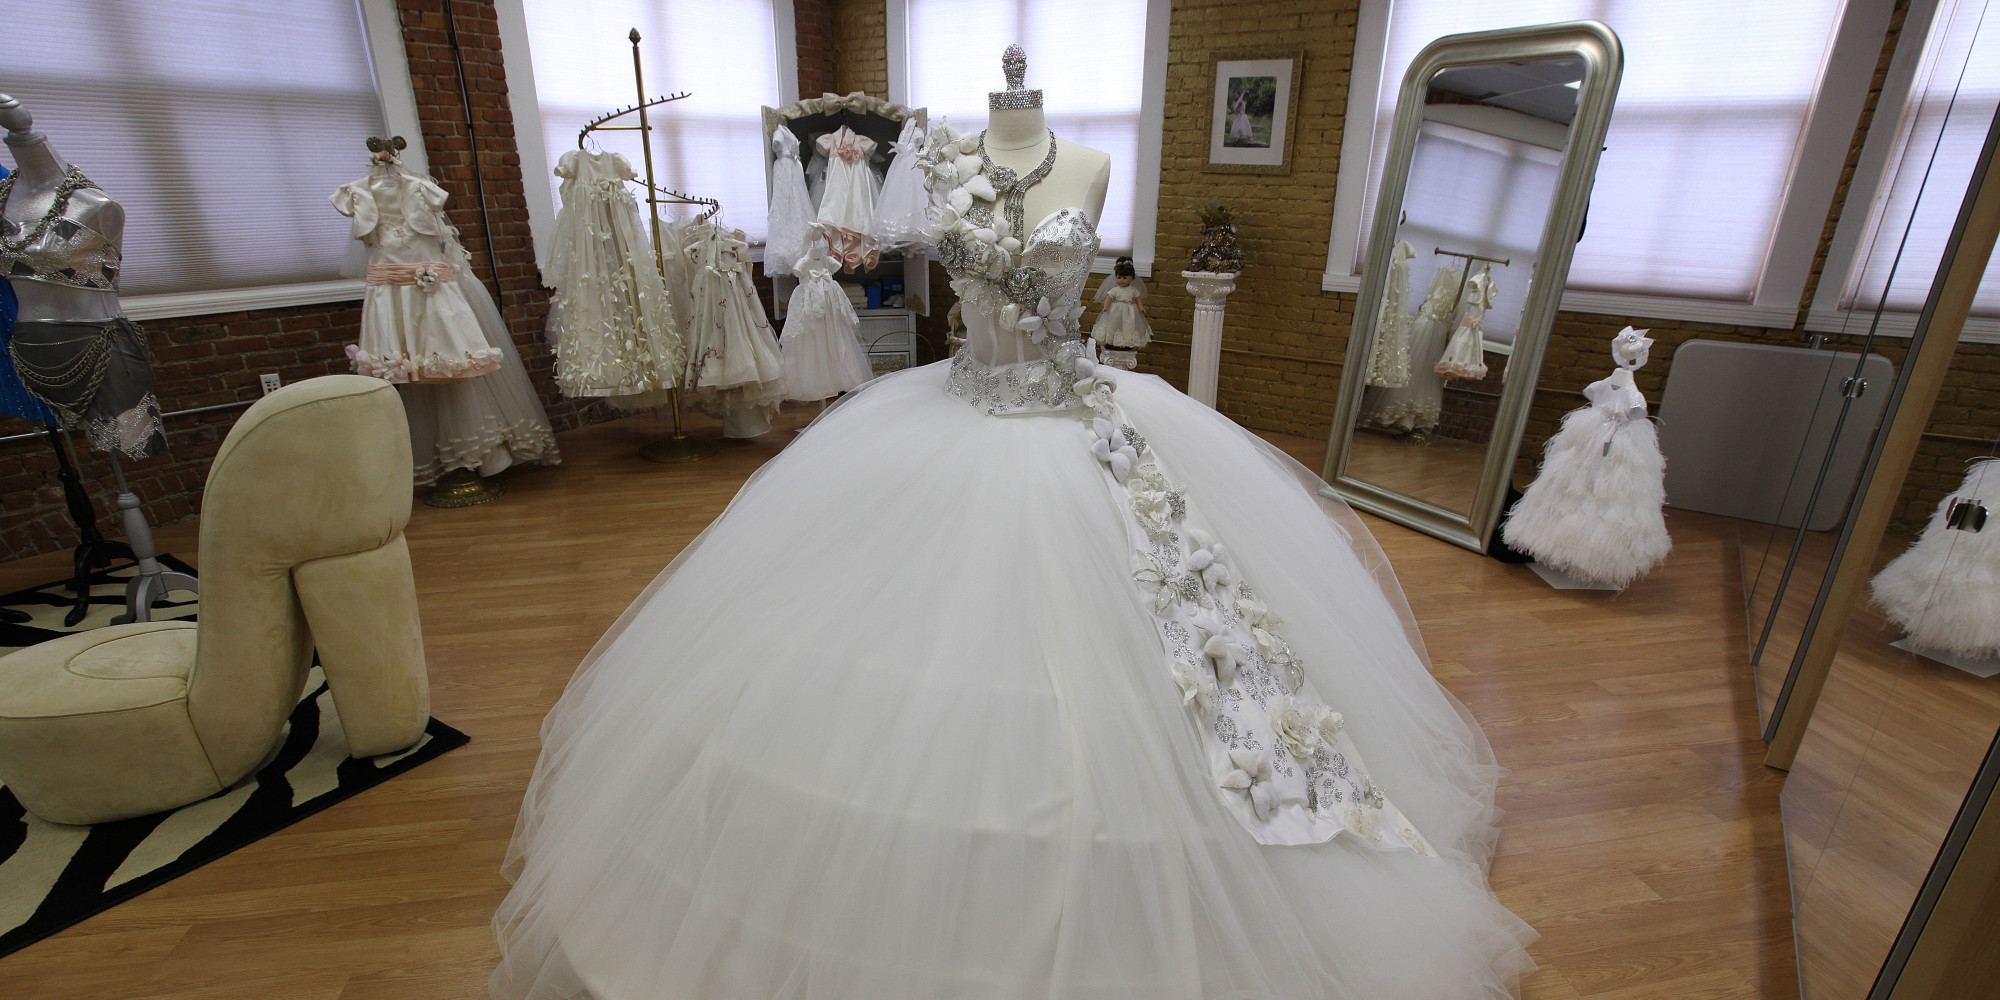 80Pound Wedding Dresses Bedazzled In Jewels This Gypsy Designer Has Seen It All  HuffPost